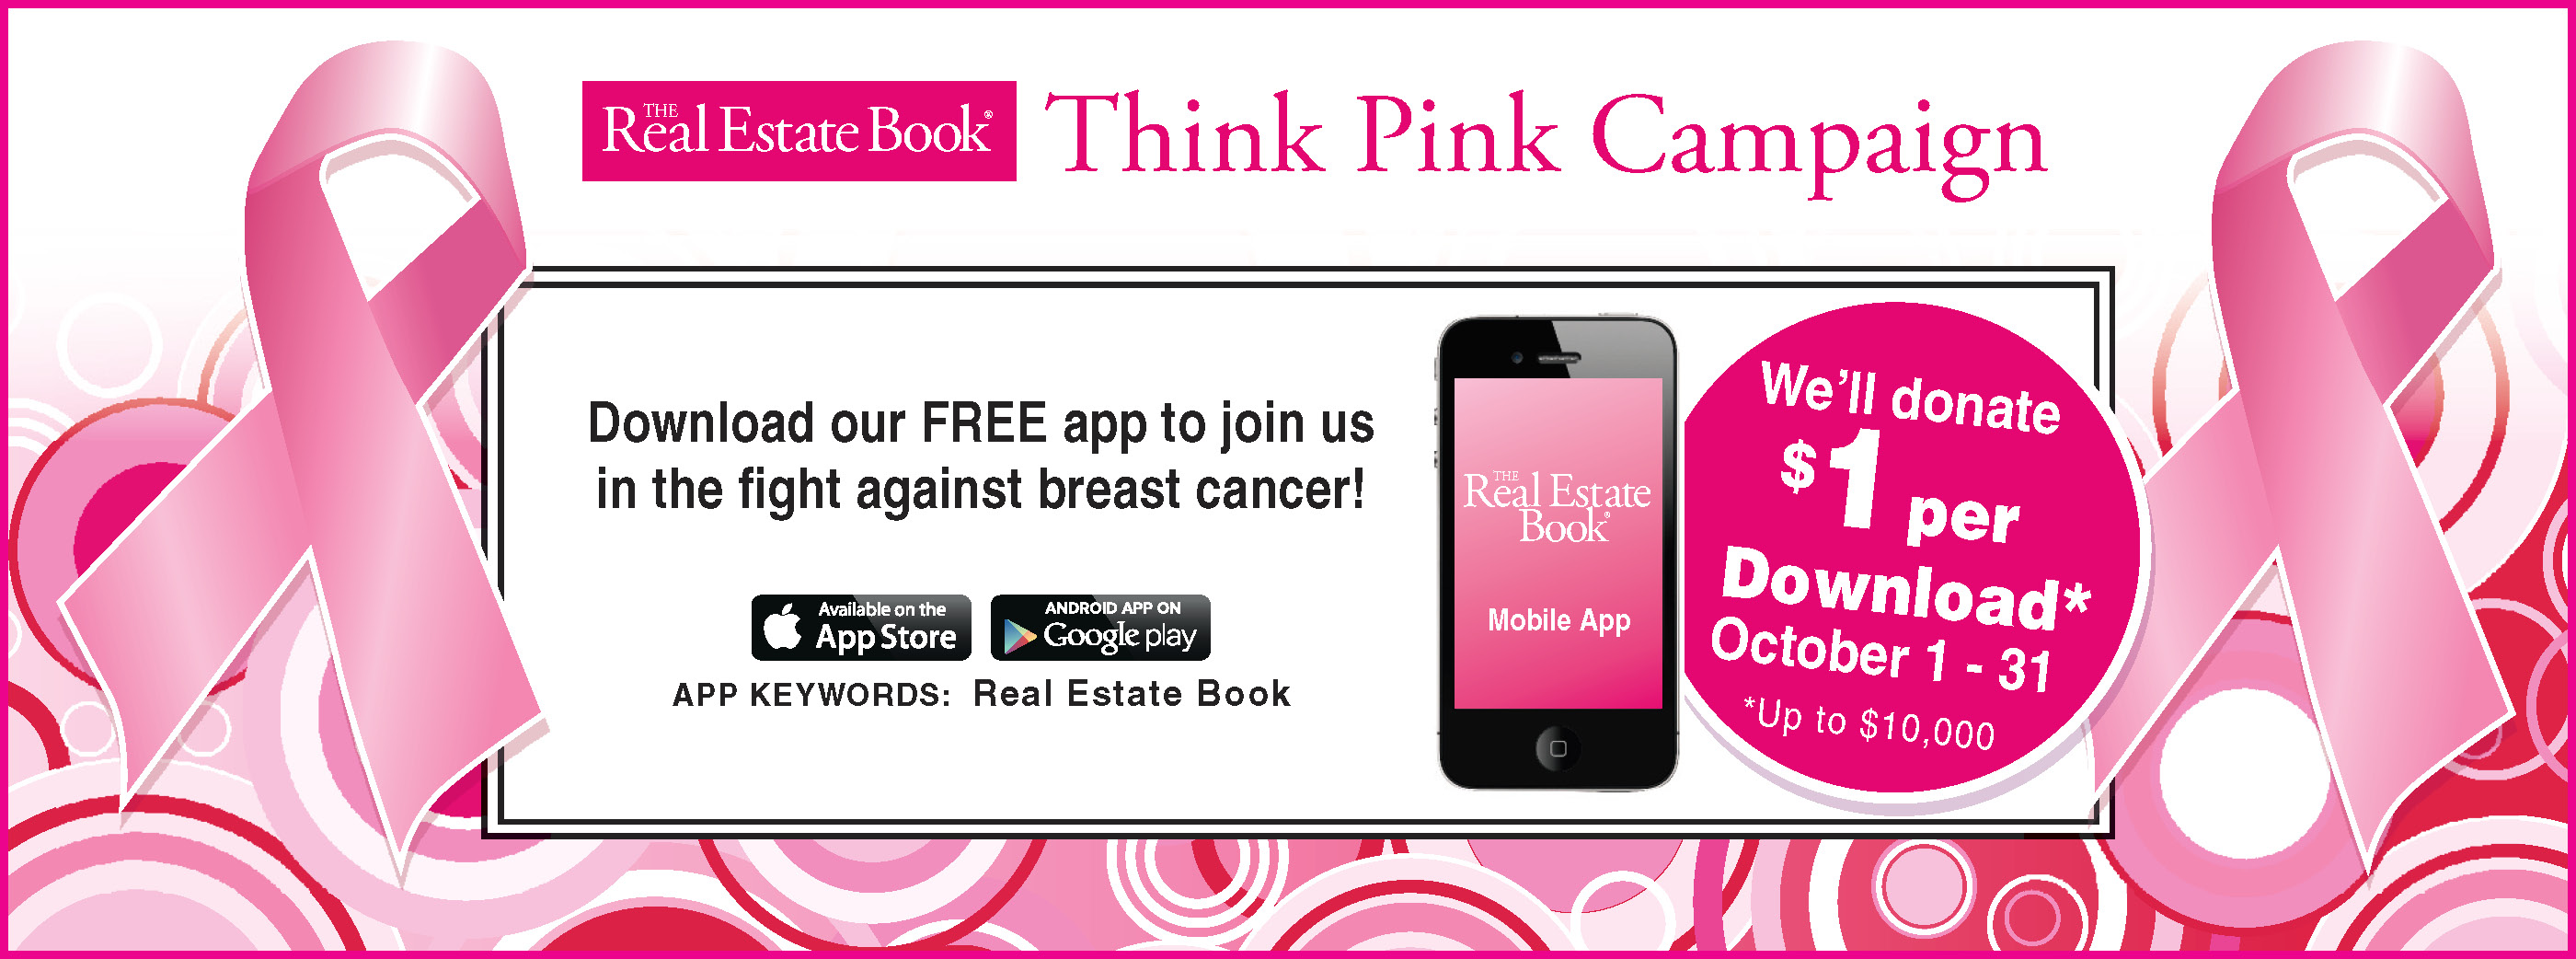 ThinkPink_FB Event cover pic1